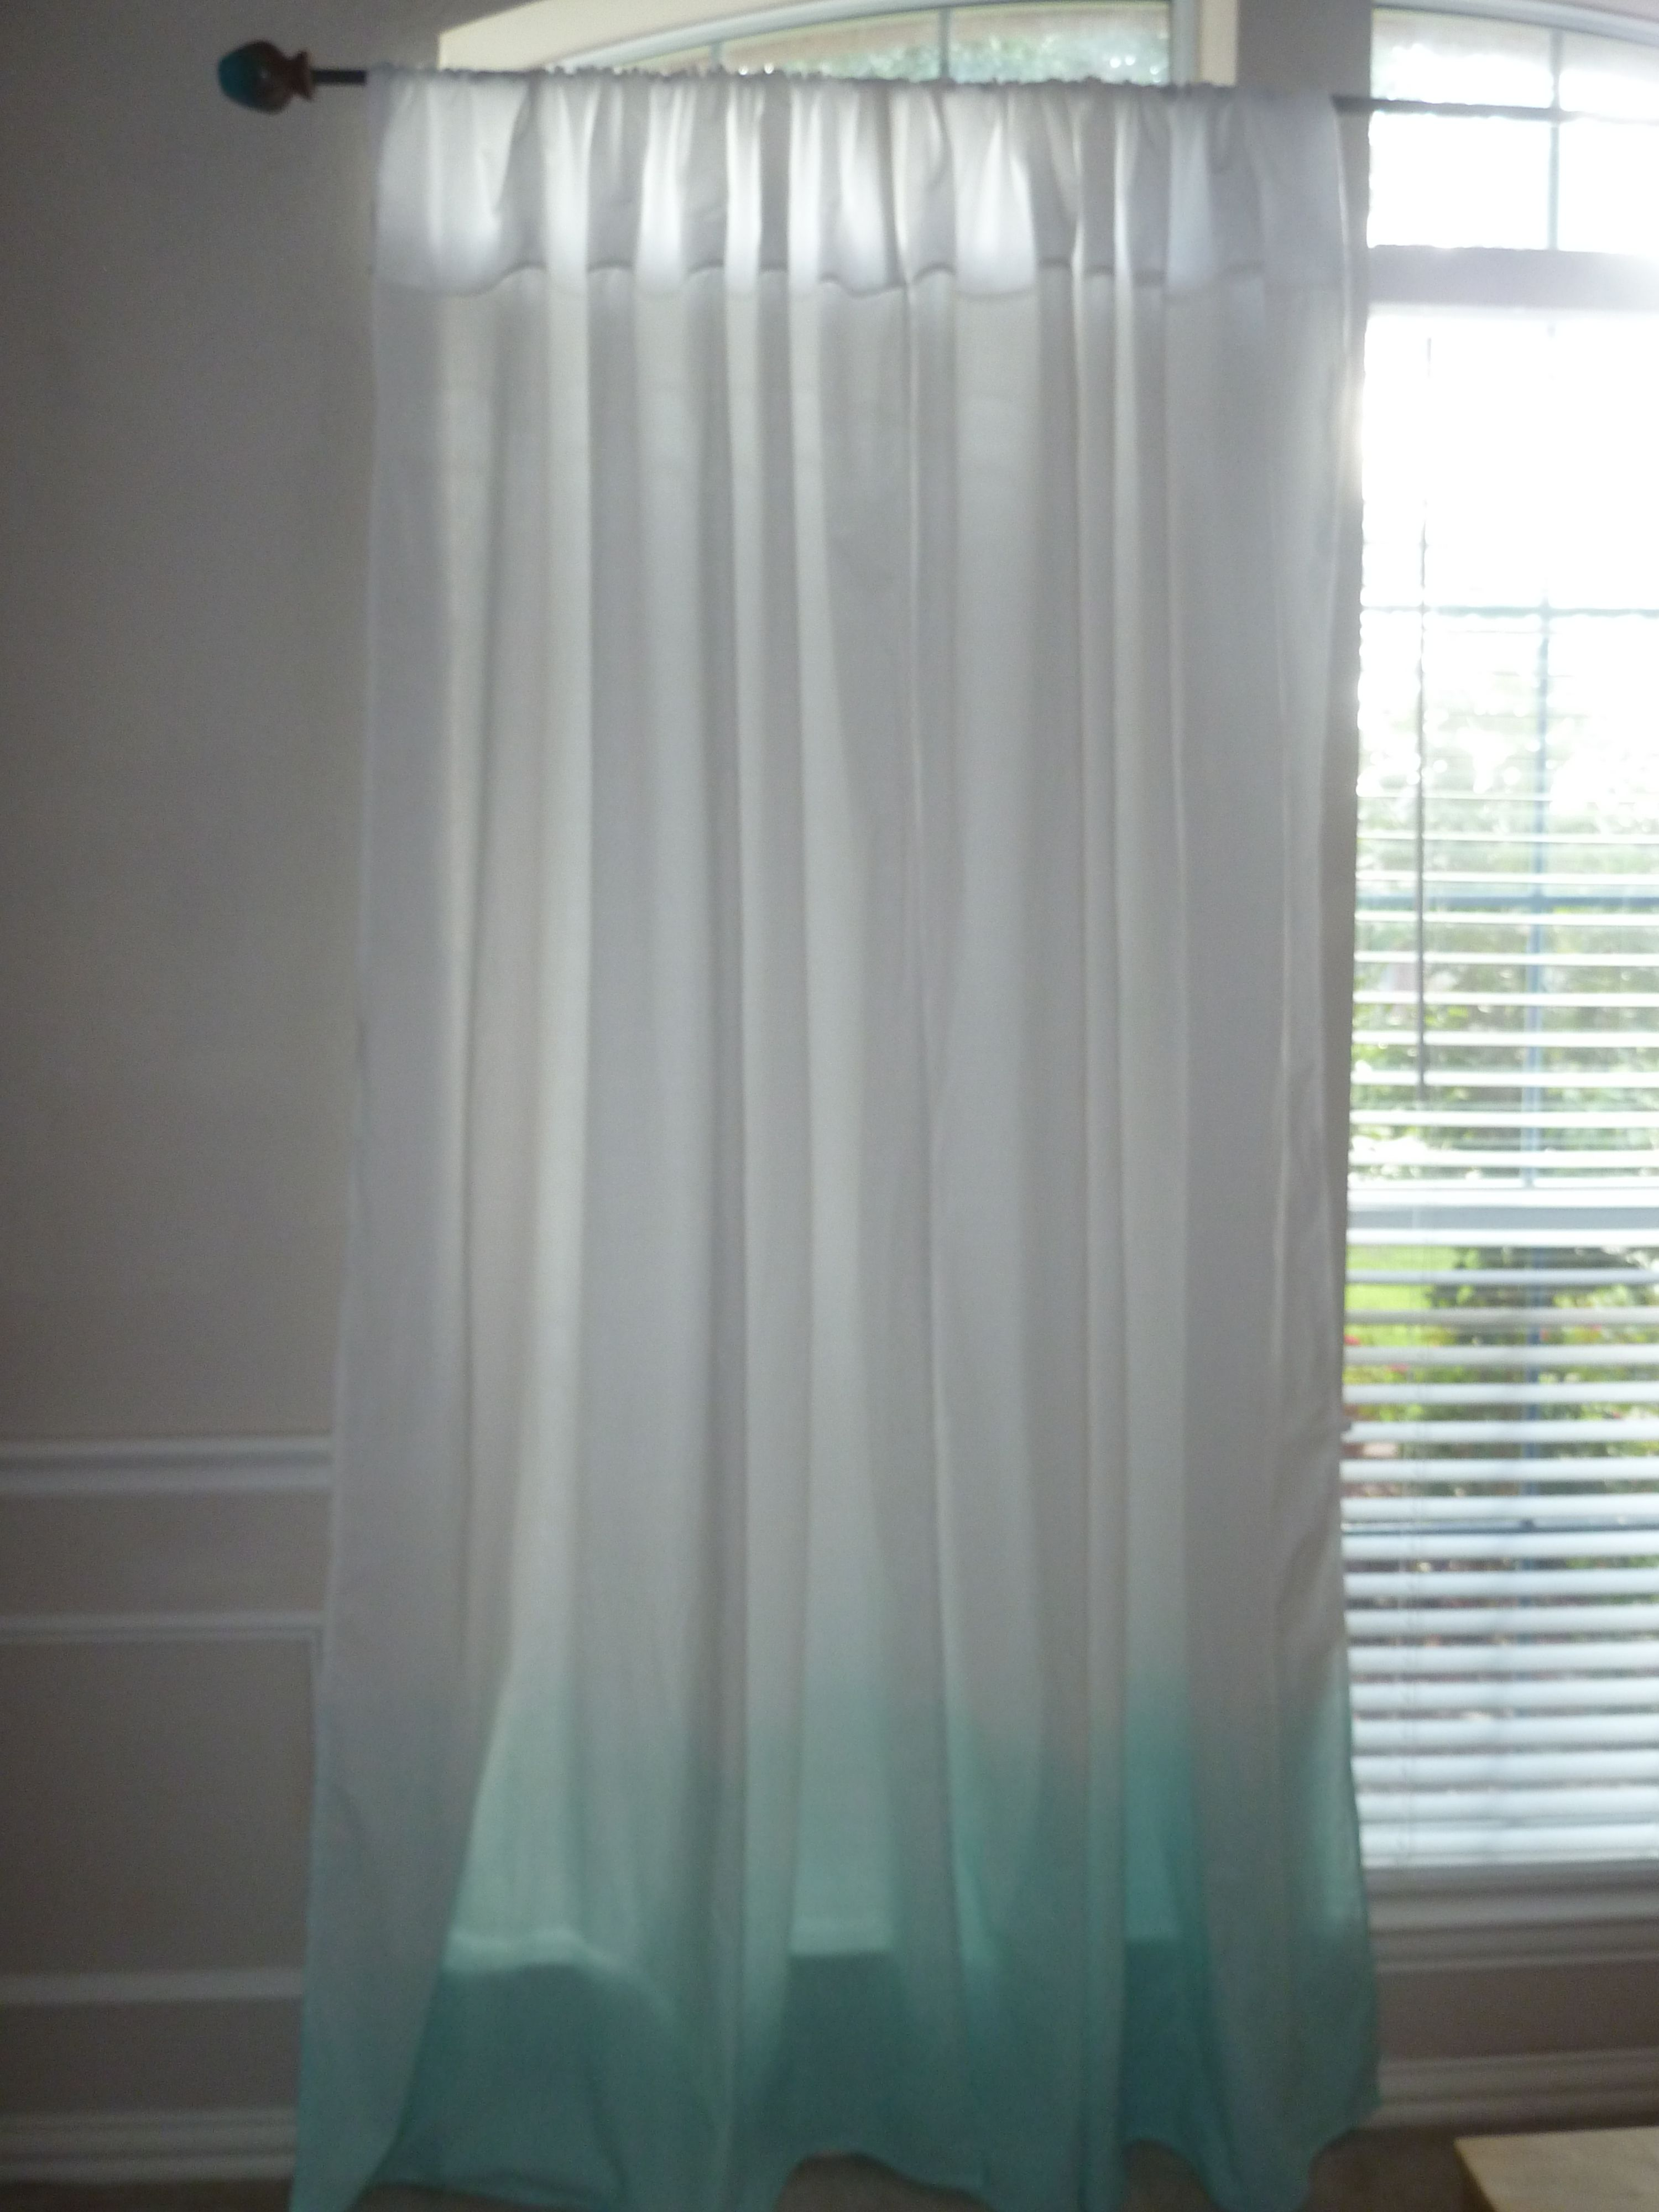 Ombre Seafoam Curtain Panel See On Etsy Com Sewsueprops 34